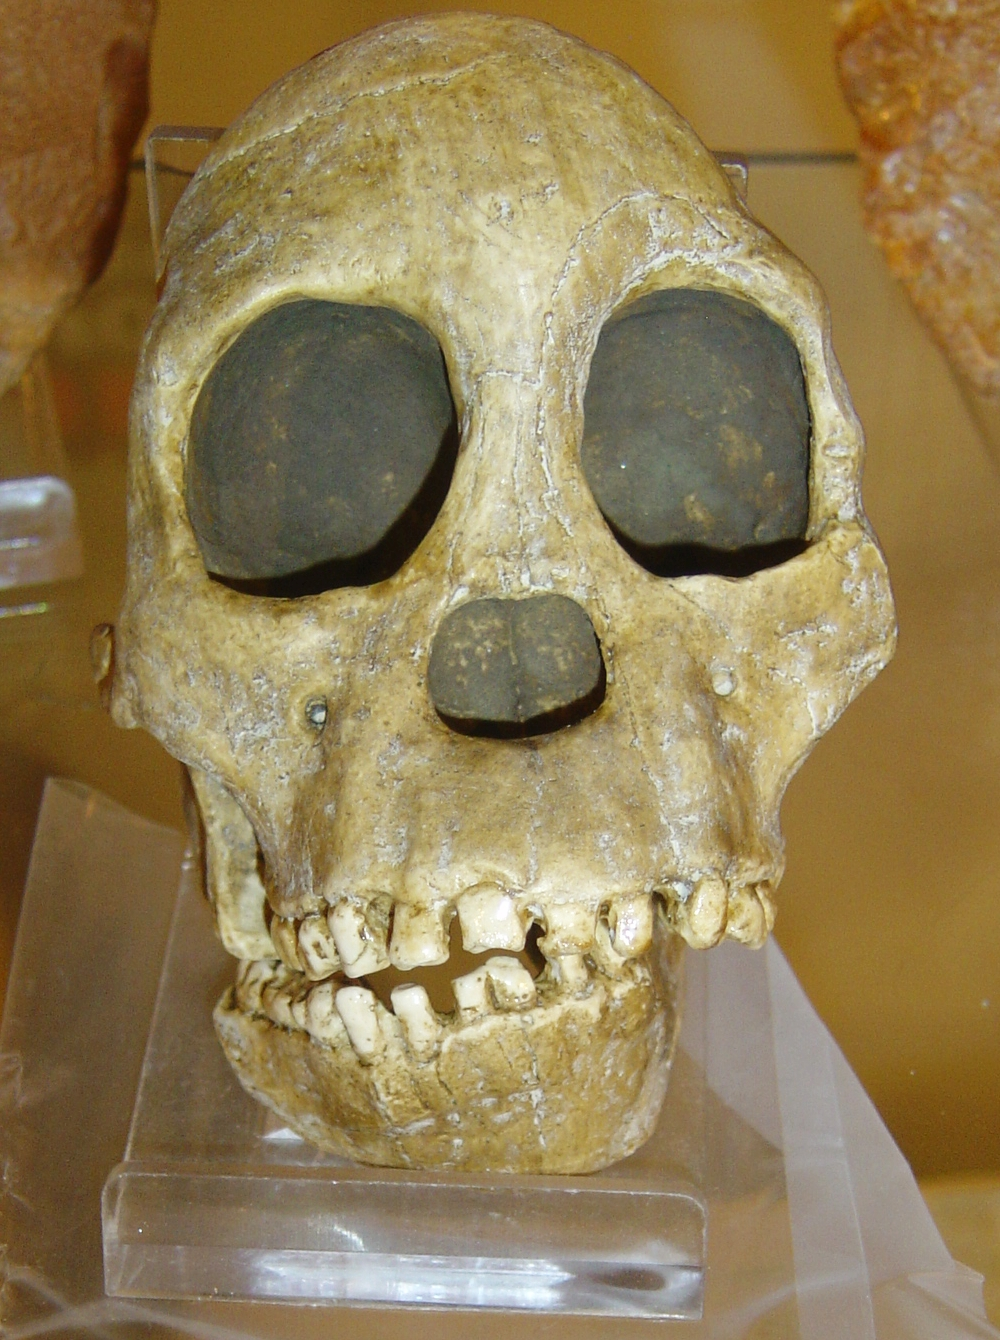 File:Australopithecus africanus.jpg - Wikipedia, the free encyclopedia